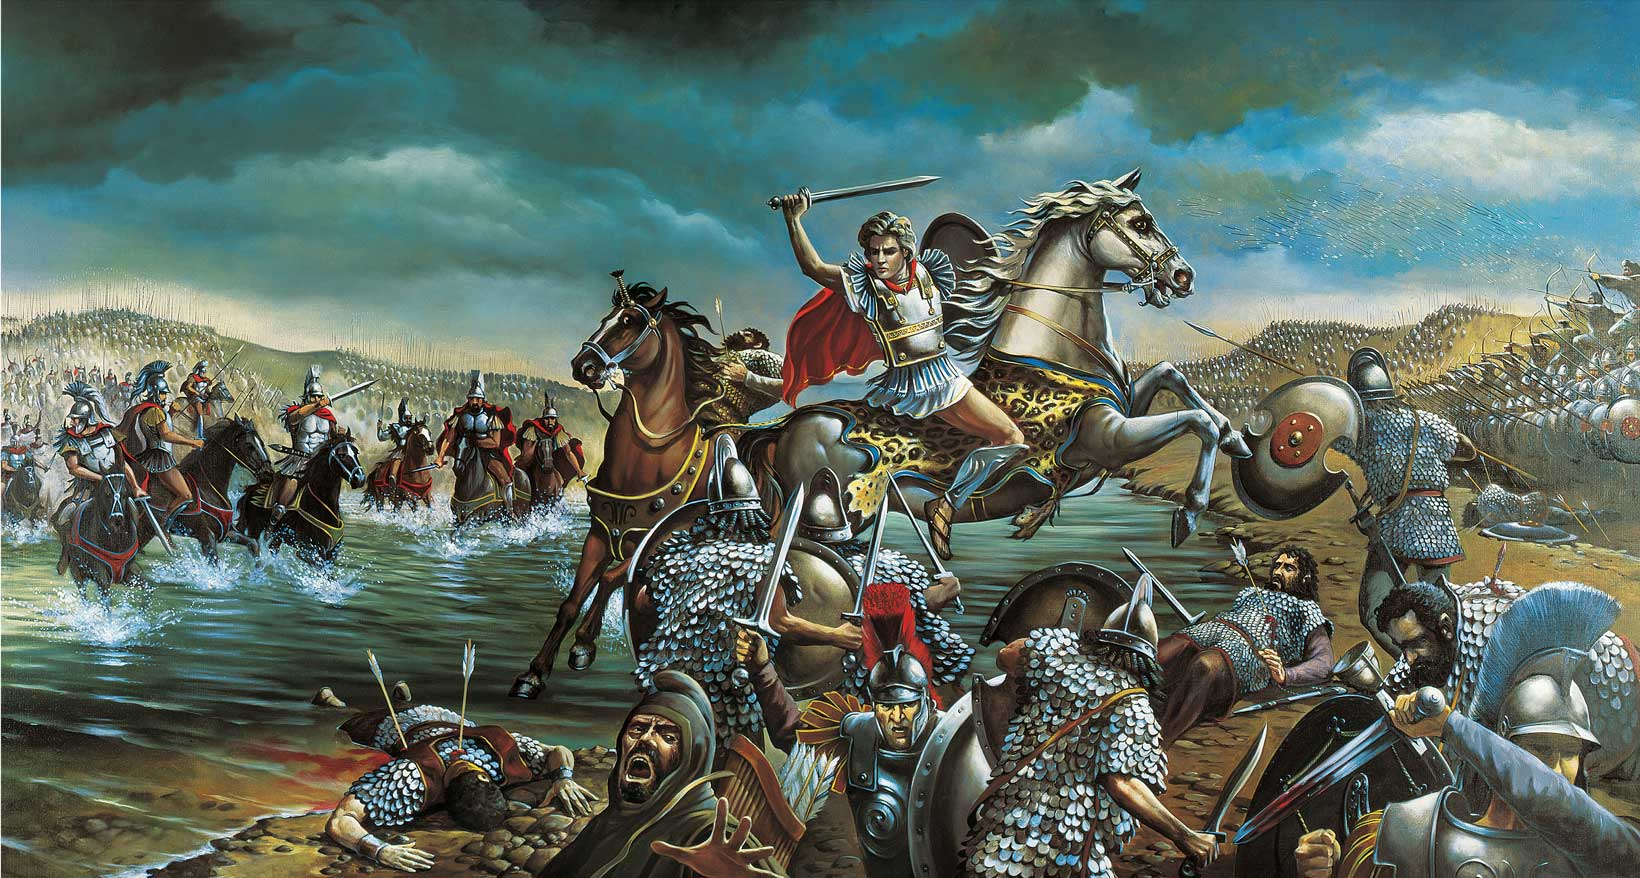 In 15 years of conquest Alexander never lost a single battle.